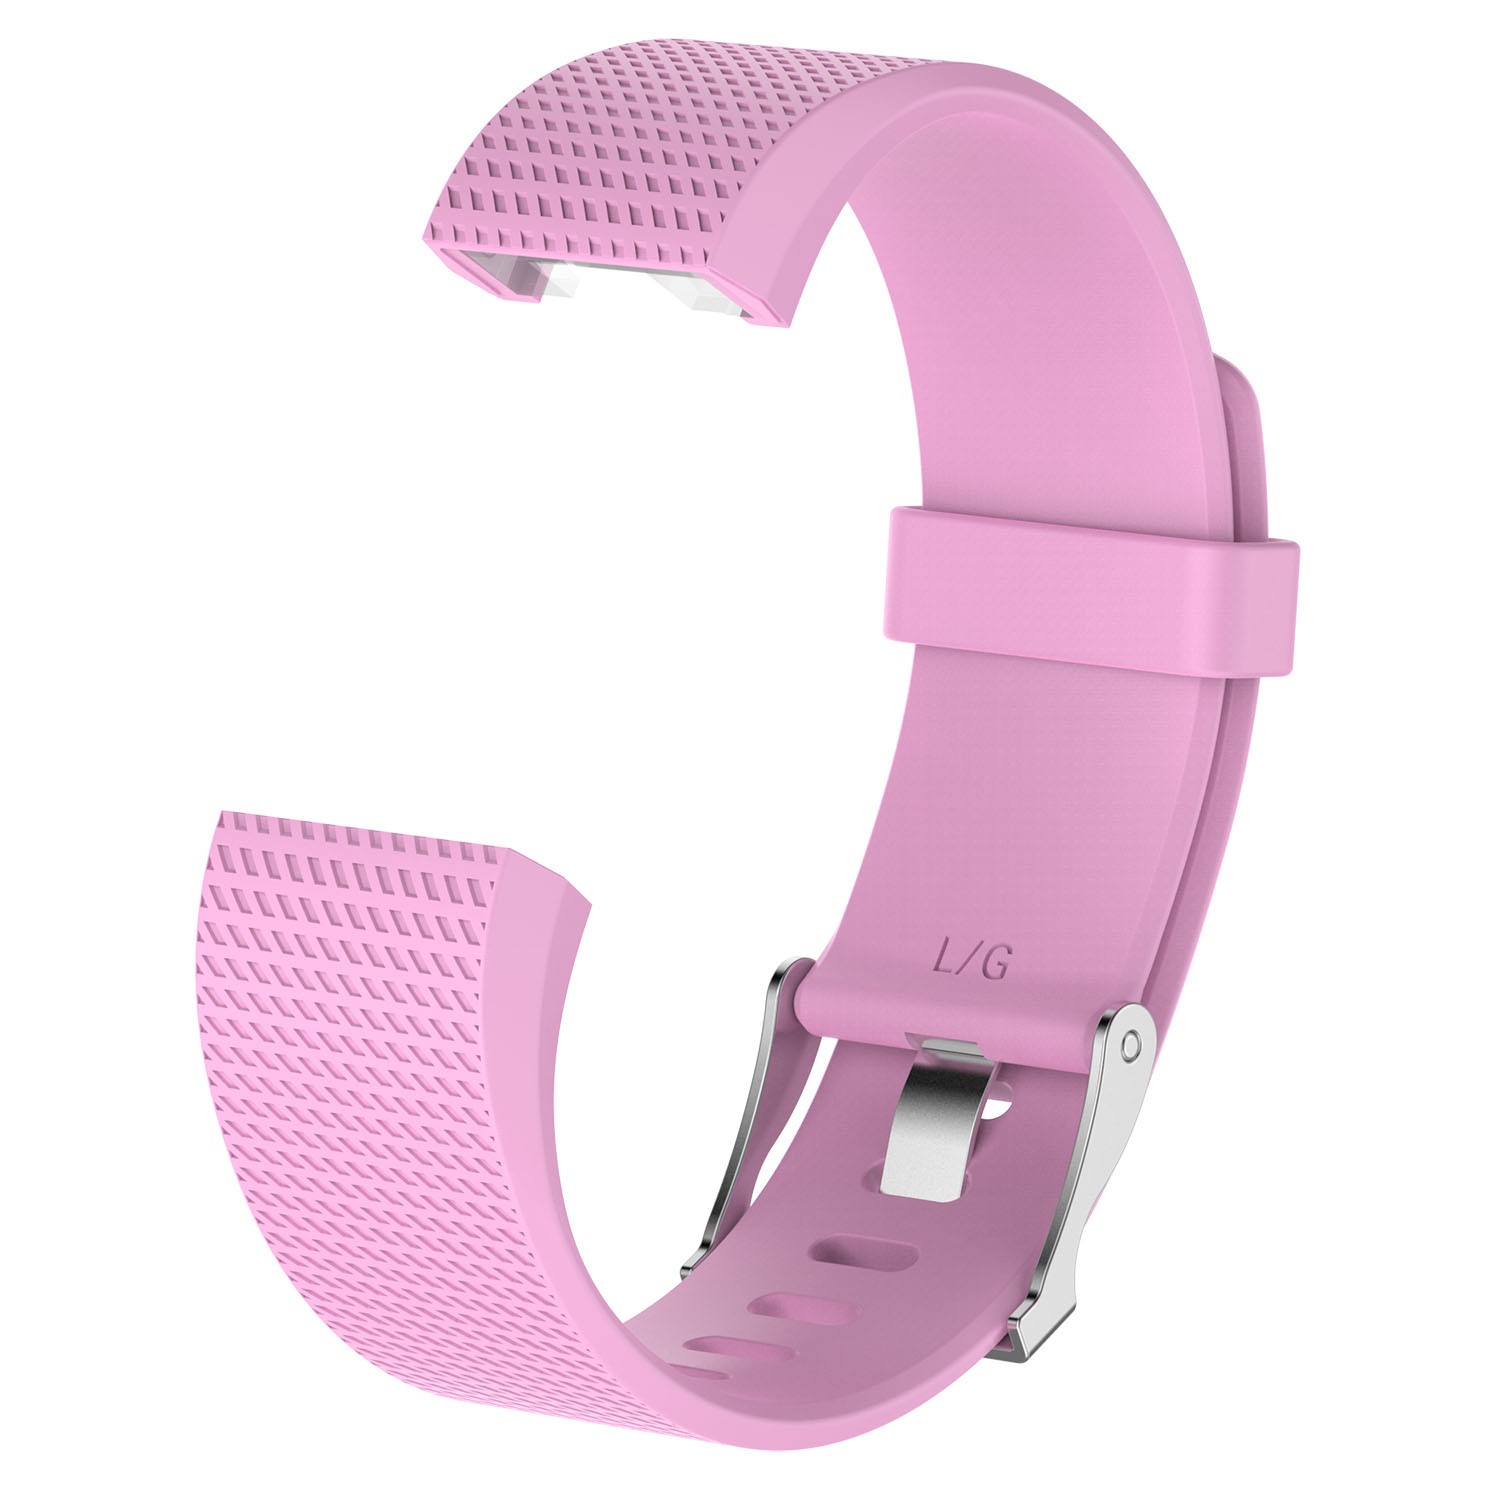 Replacement-Silicone-Wristband-Watch-Strap-Bands-Bracelet-For-Fitbit-Charge-2 thumbnail 39